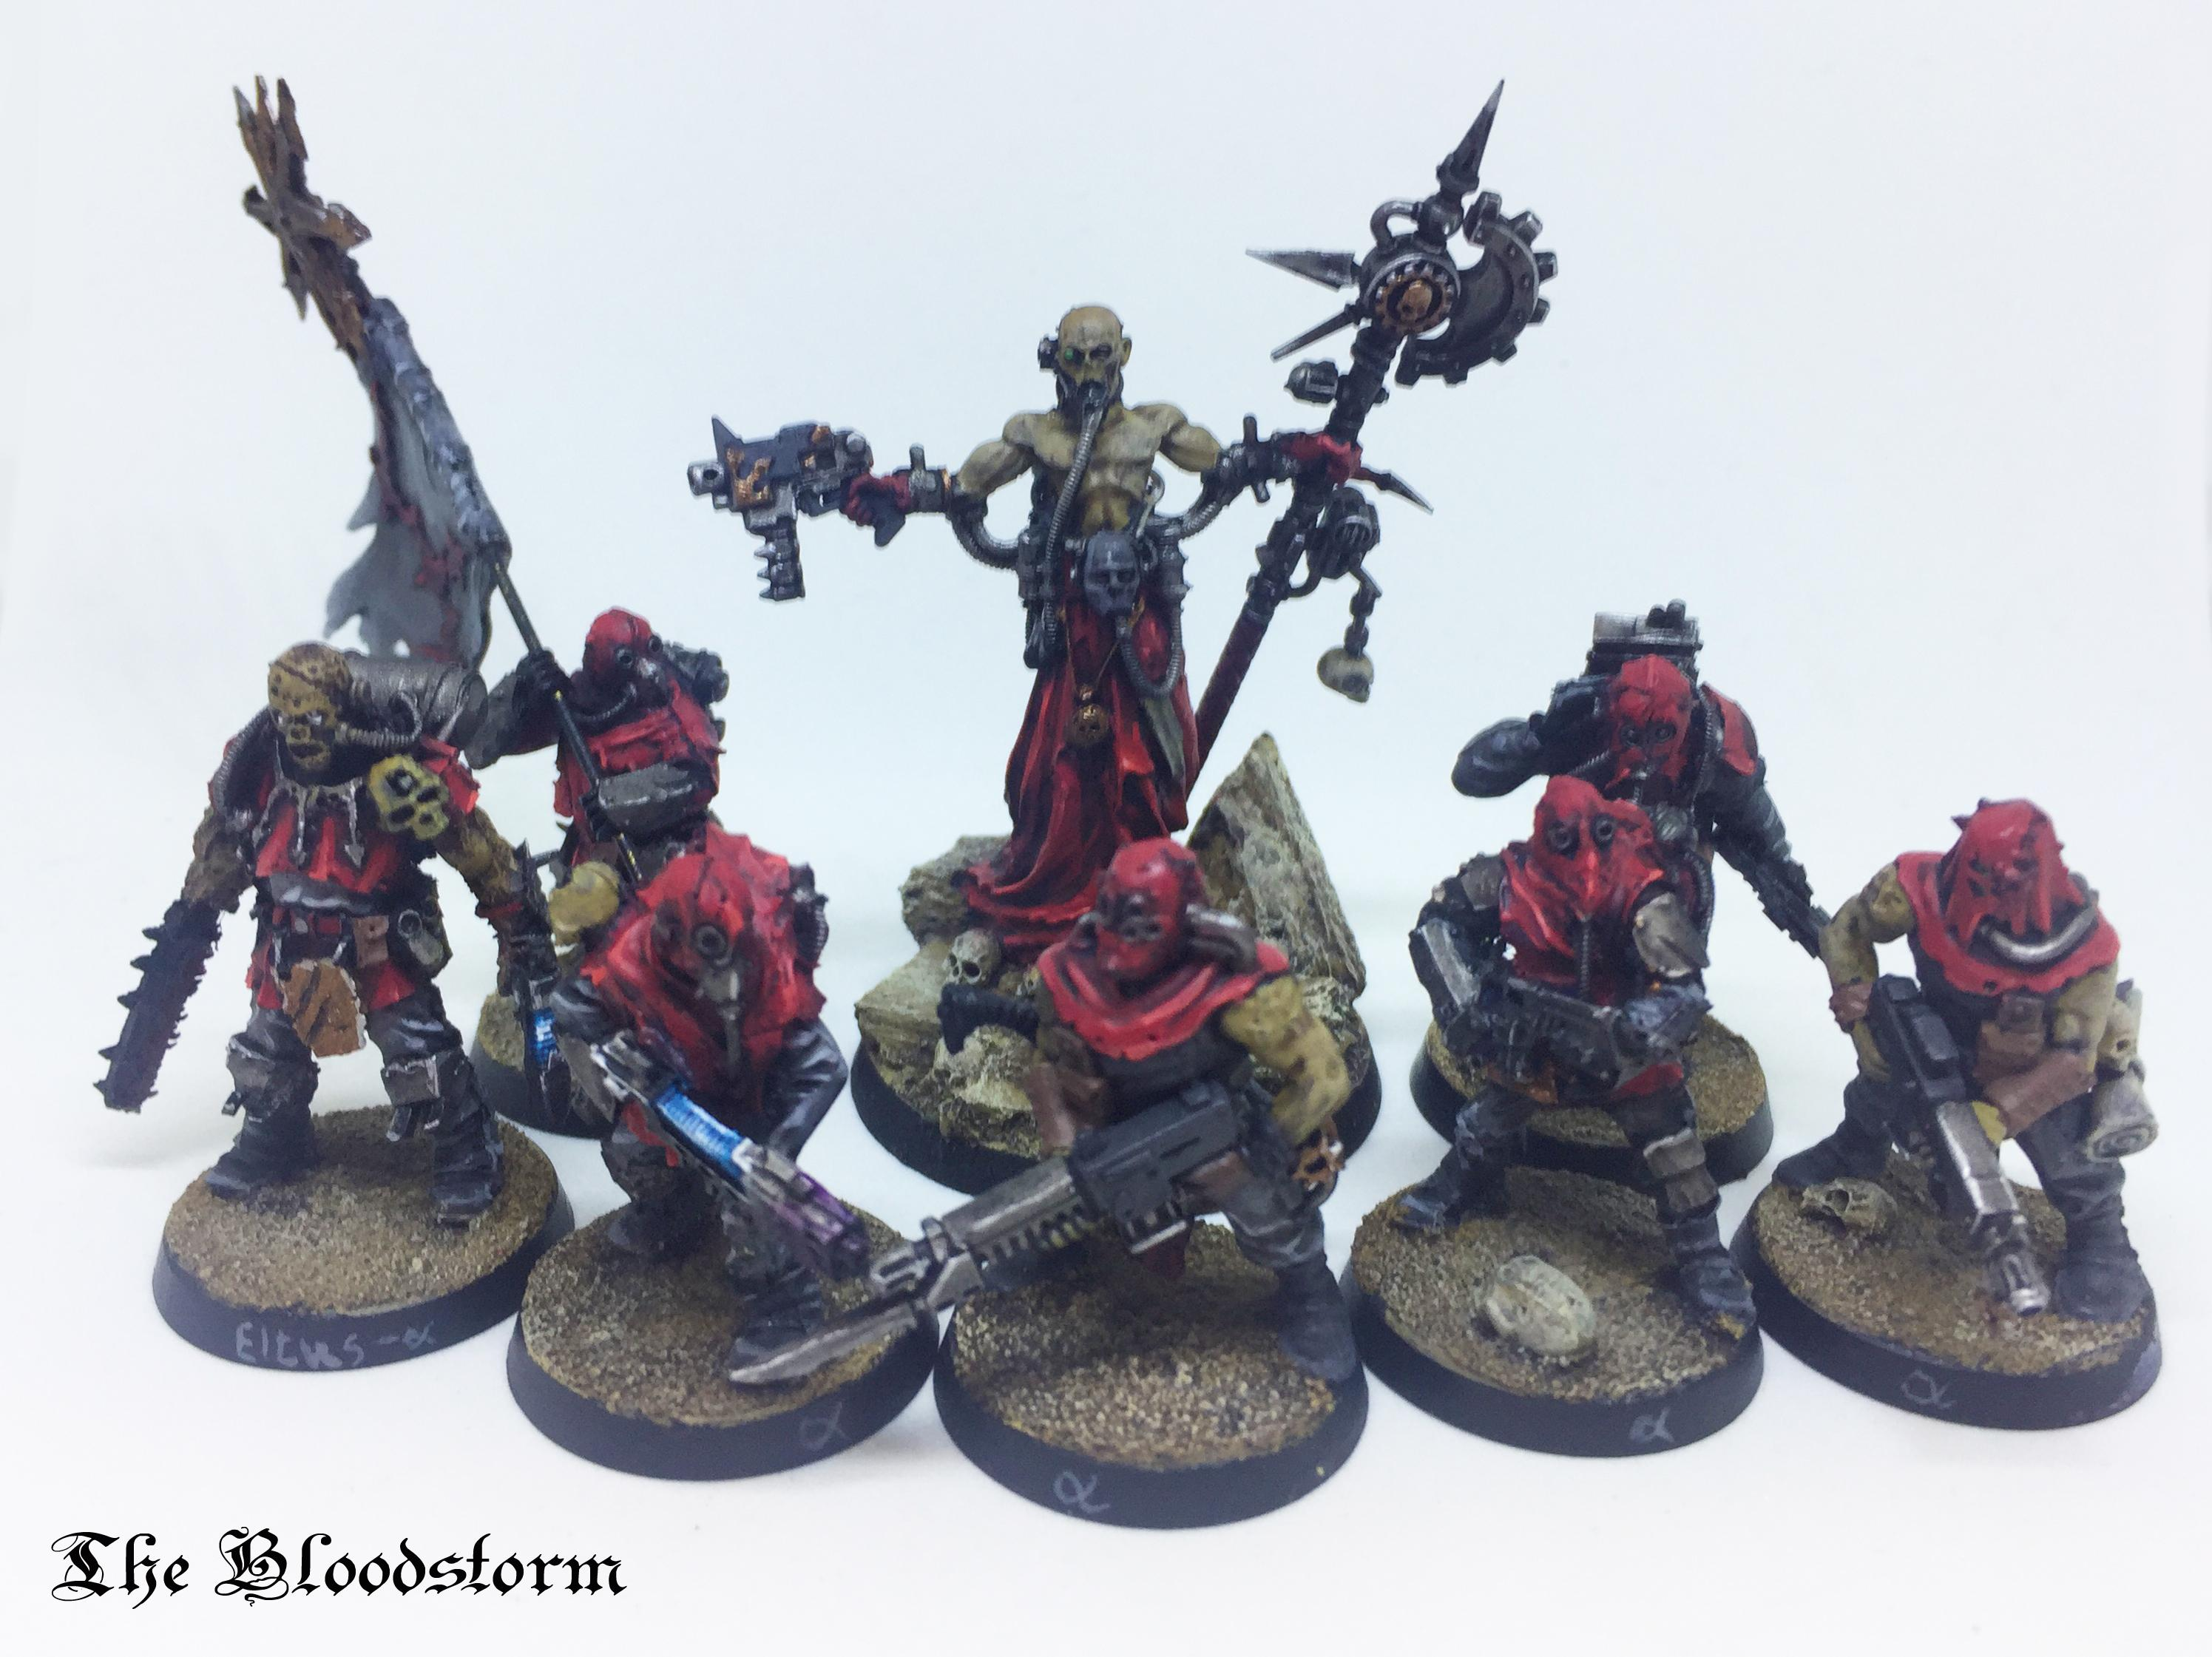 Arch-demagogue, Arch-heretic, Chaos, Cultists, Khorne, Renegade Militia Command, Renegades, Traitors, Warhammer 40,000